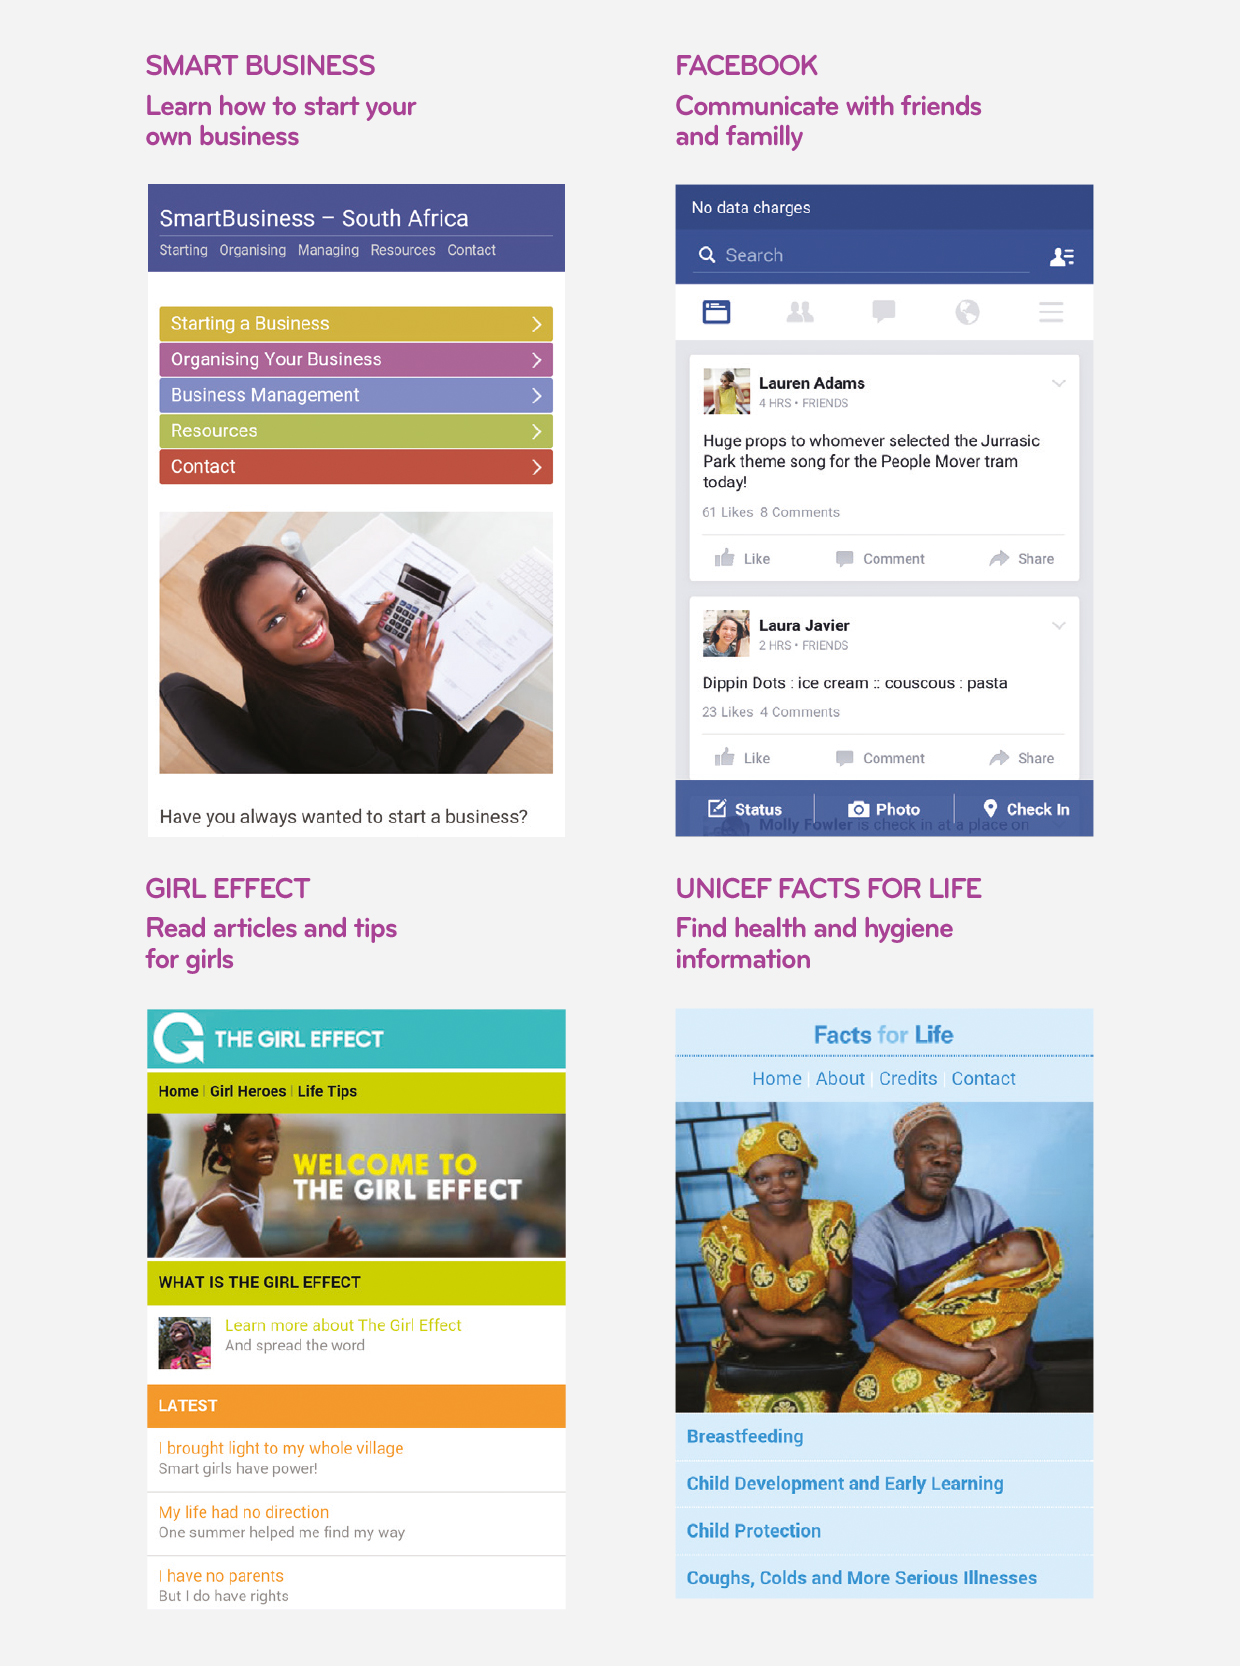 Free Basics for Facebook | Cell C